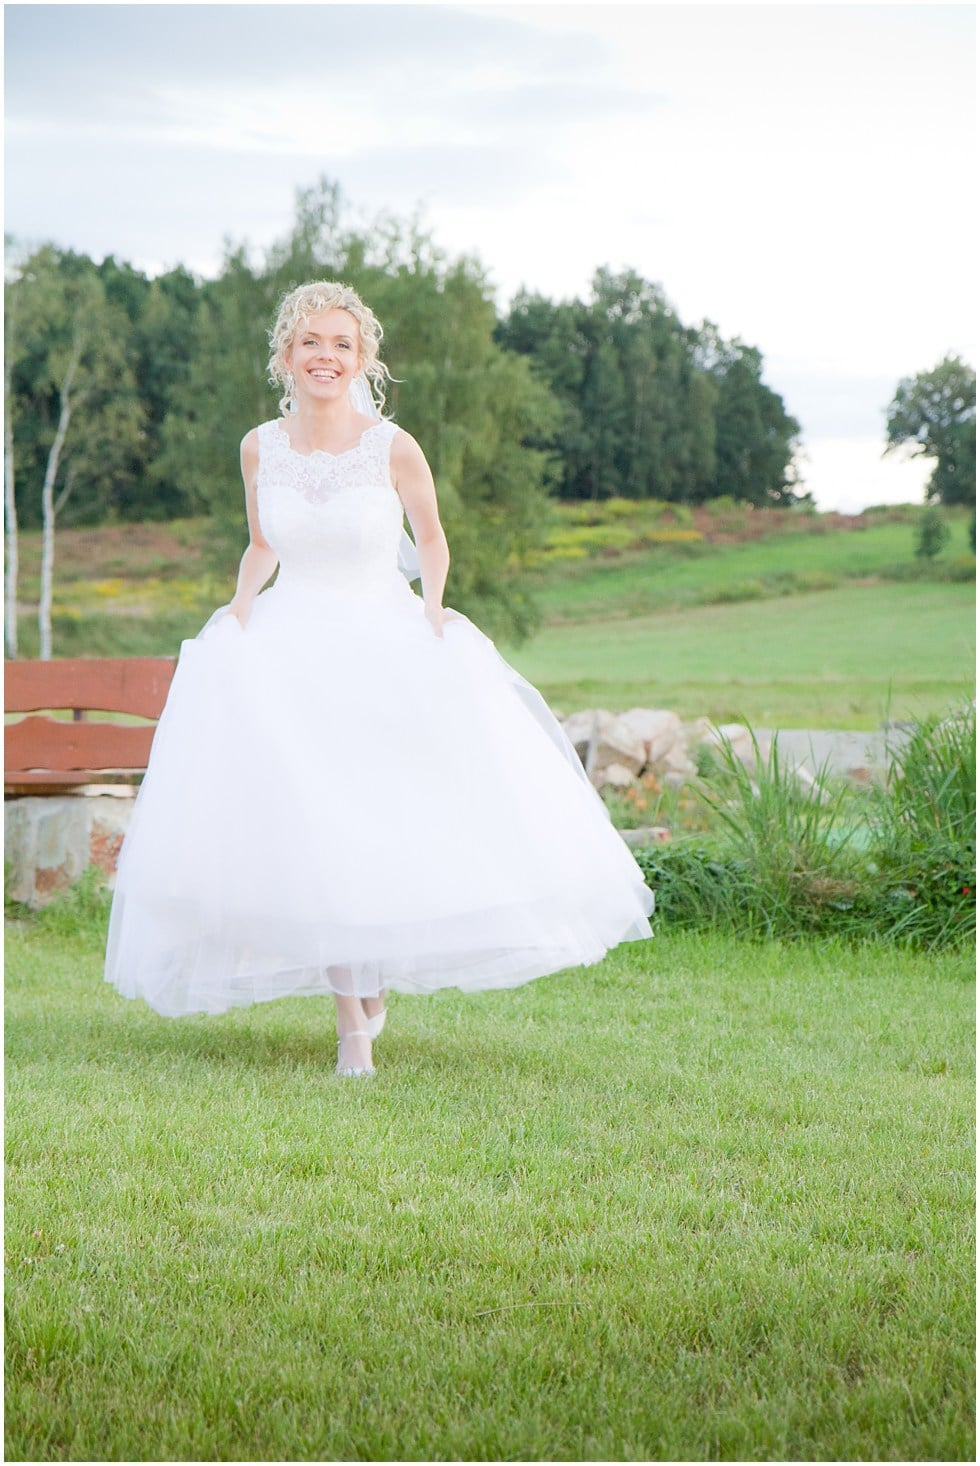 The bride running happily through a meadow and looking gorgeous at a wedding photographers dream wedding in Poland